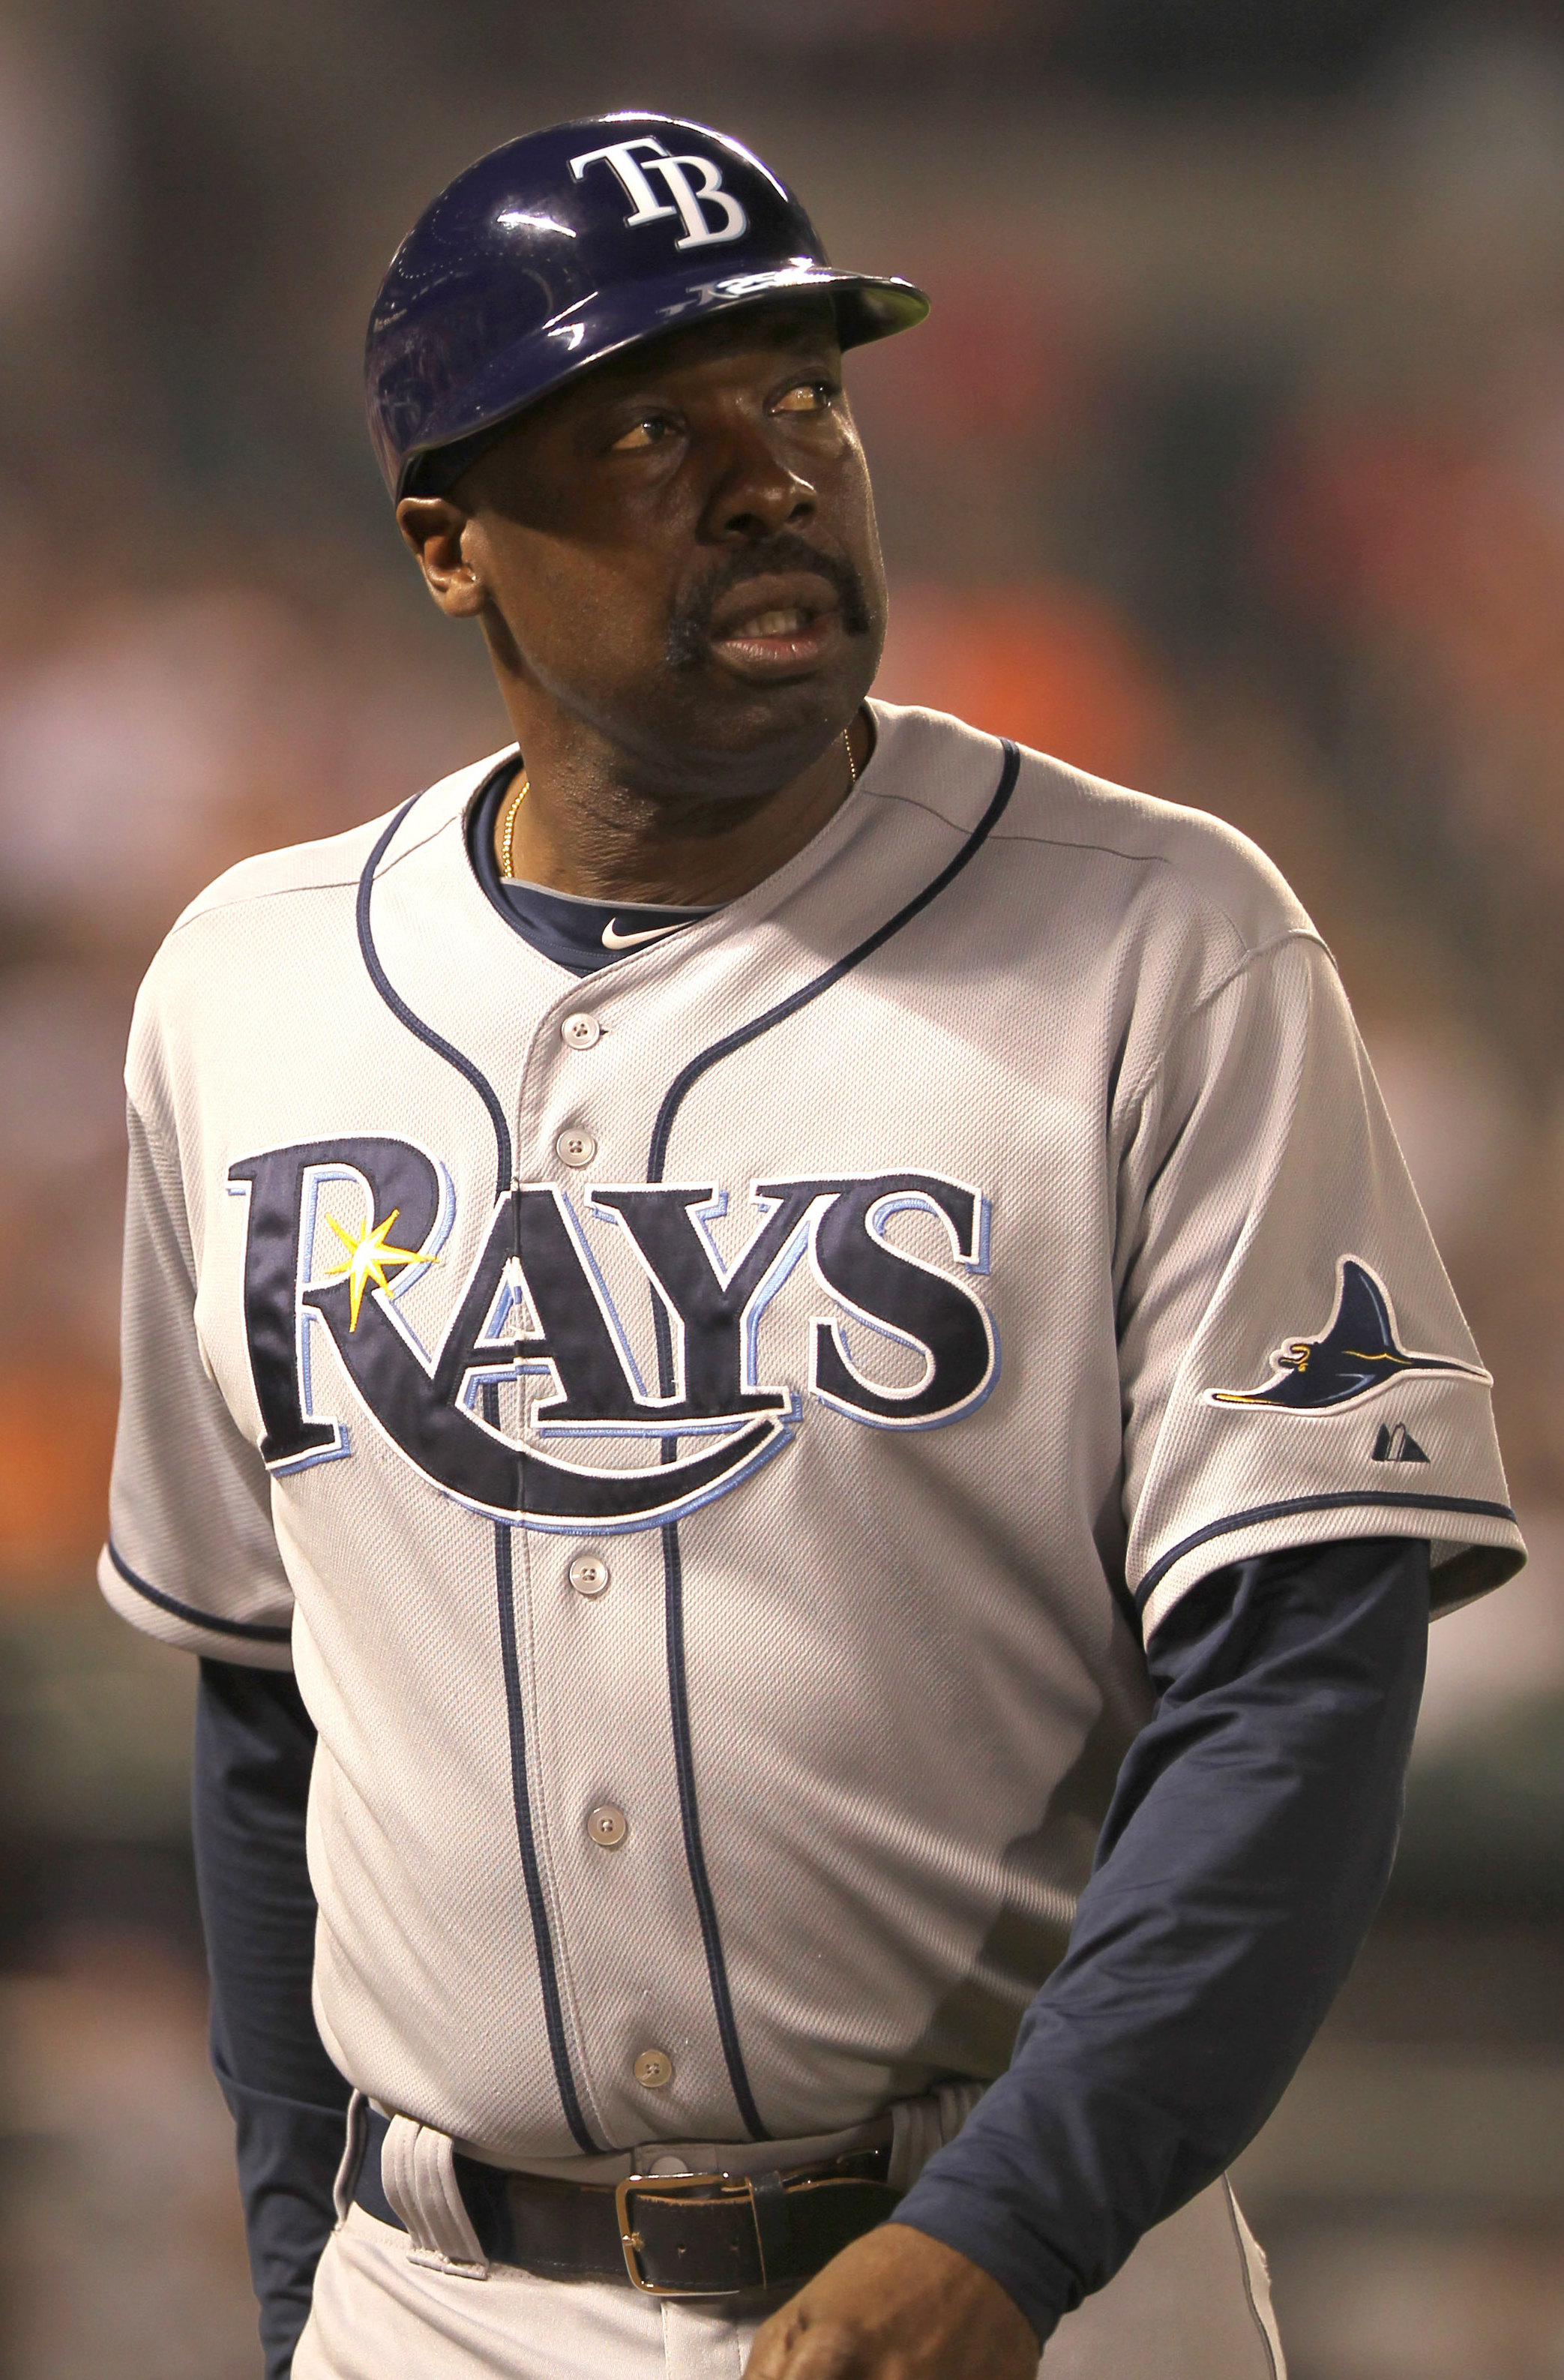 Hendrick as a coach for the Tampa Bay Rays